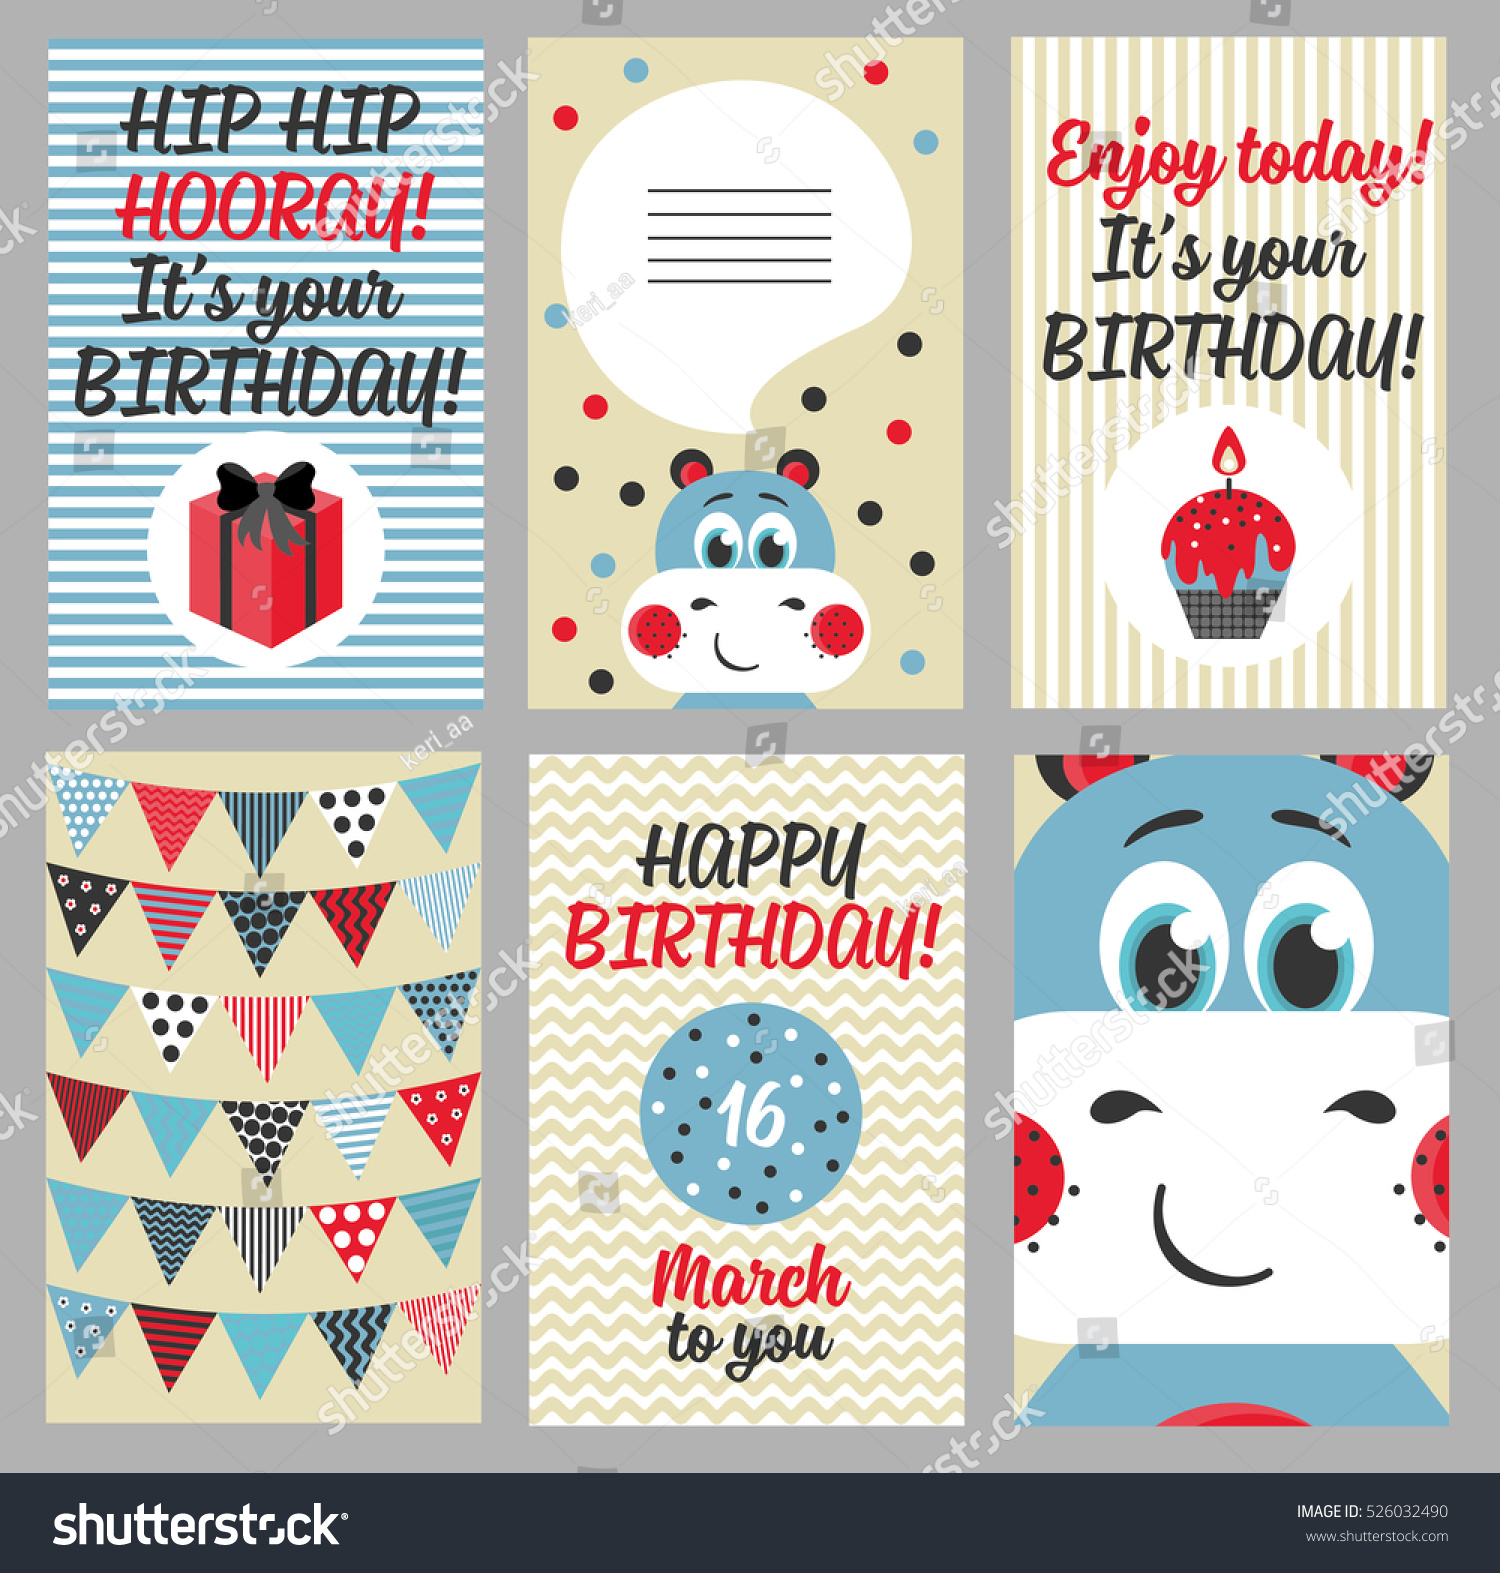 6 Birthday Card Templates: Set 6 Cute Creative Cards Templates Stock Vector 526032490